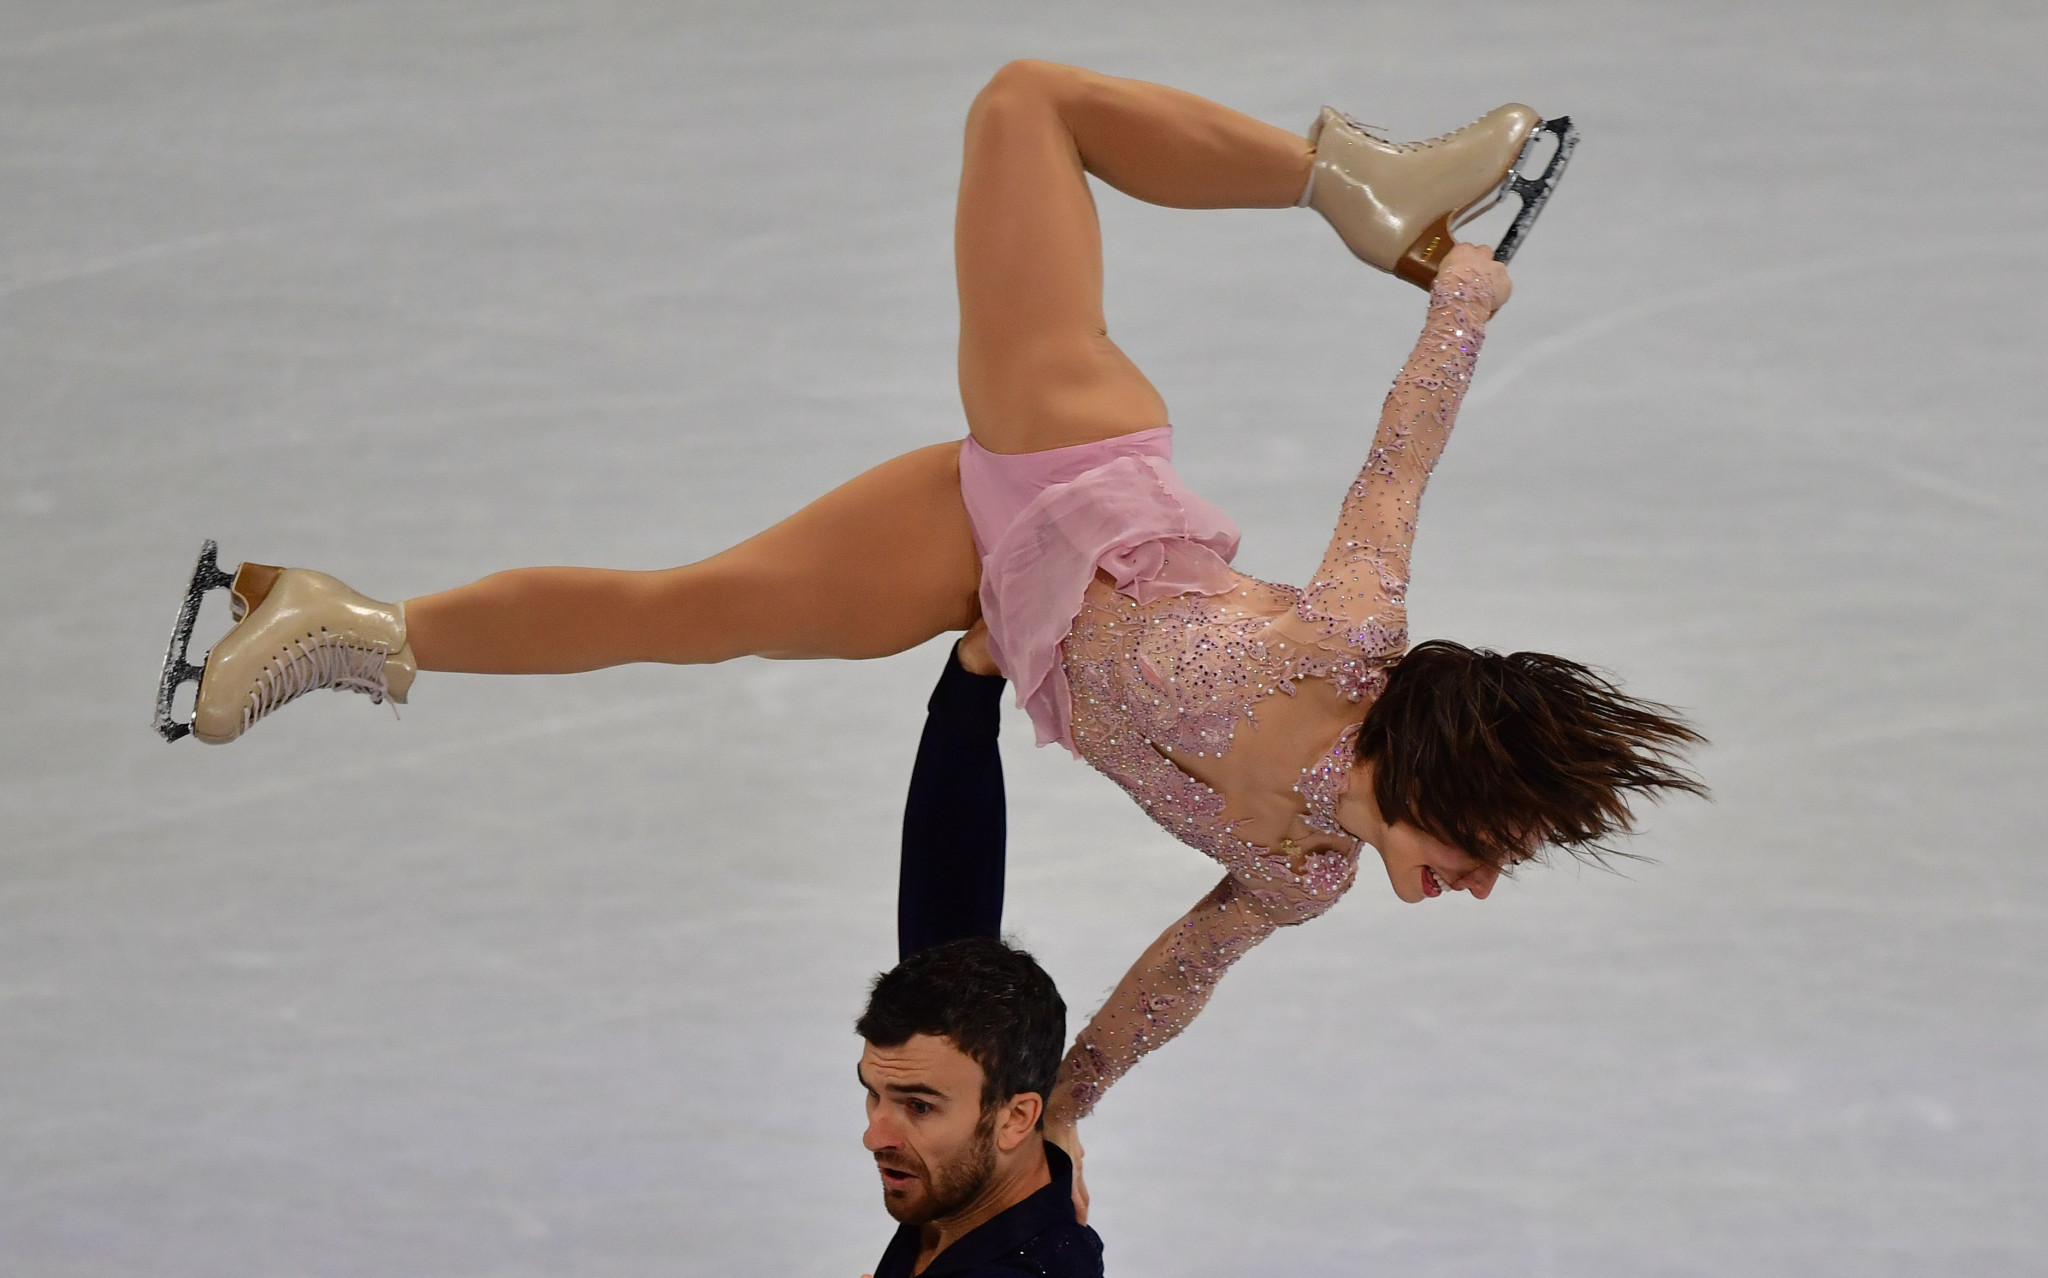 Eric Radford previously paired with Meagan Duhamel ©Getty Images